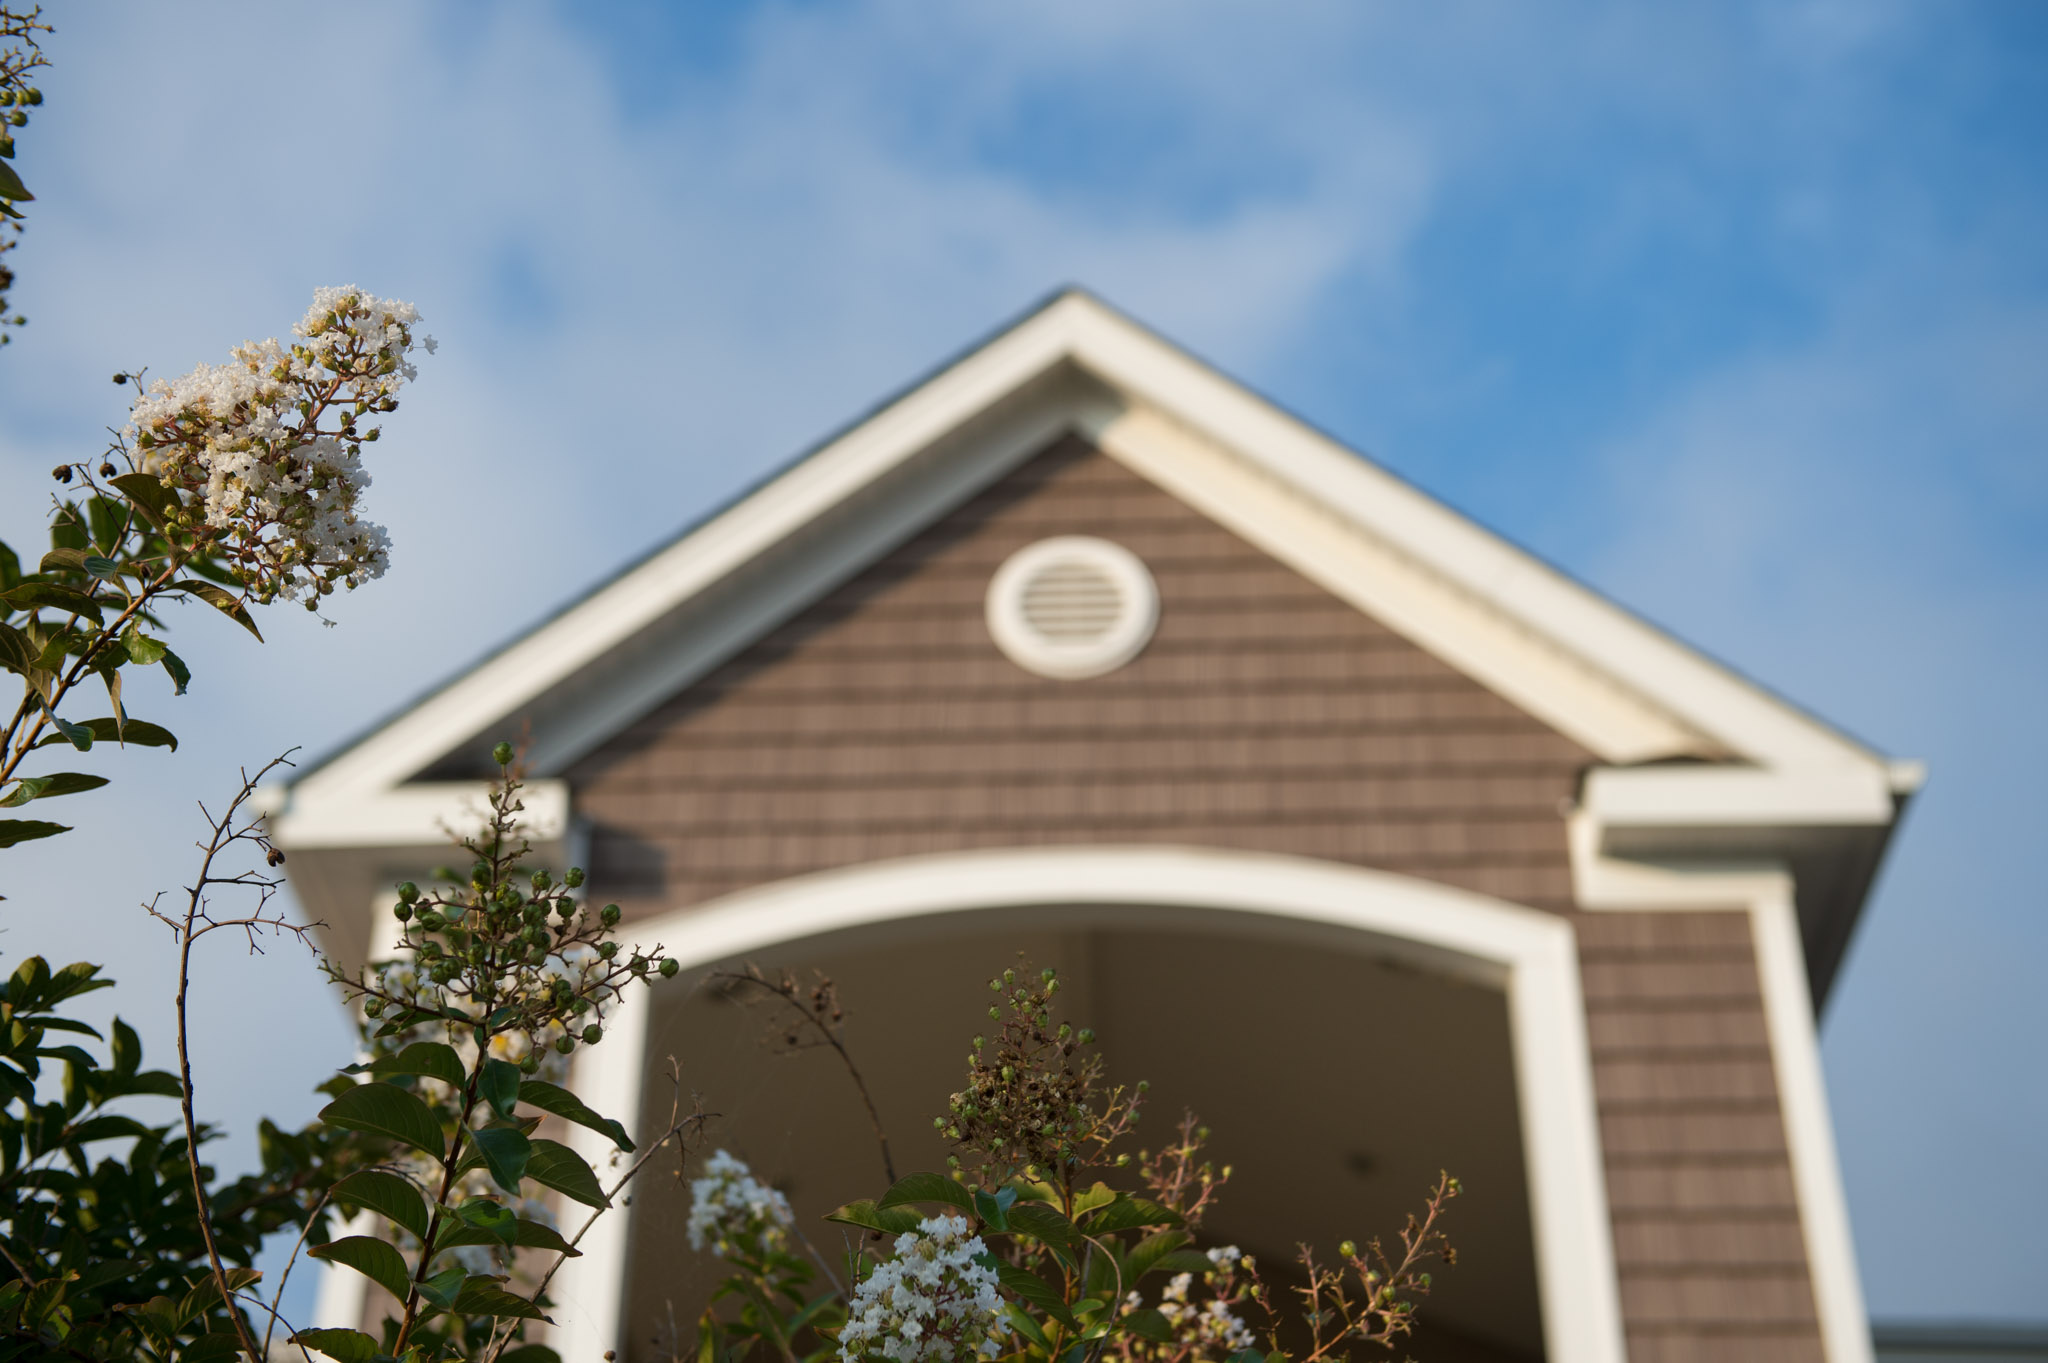 North 38 Exteriors for Web-1022.jpg